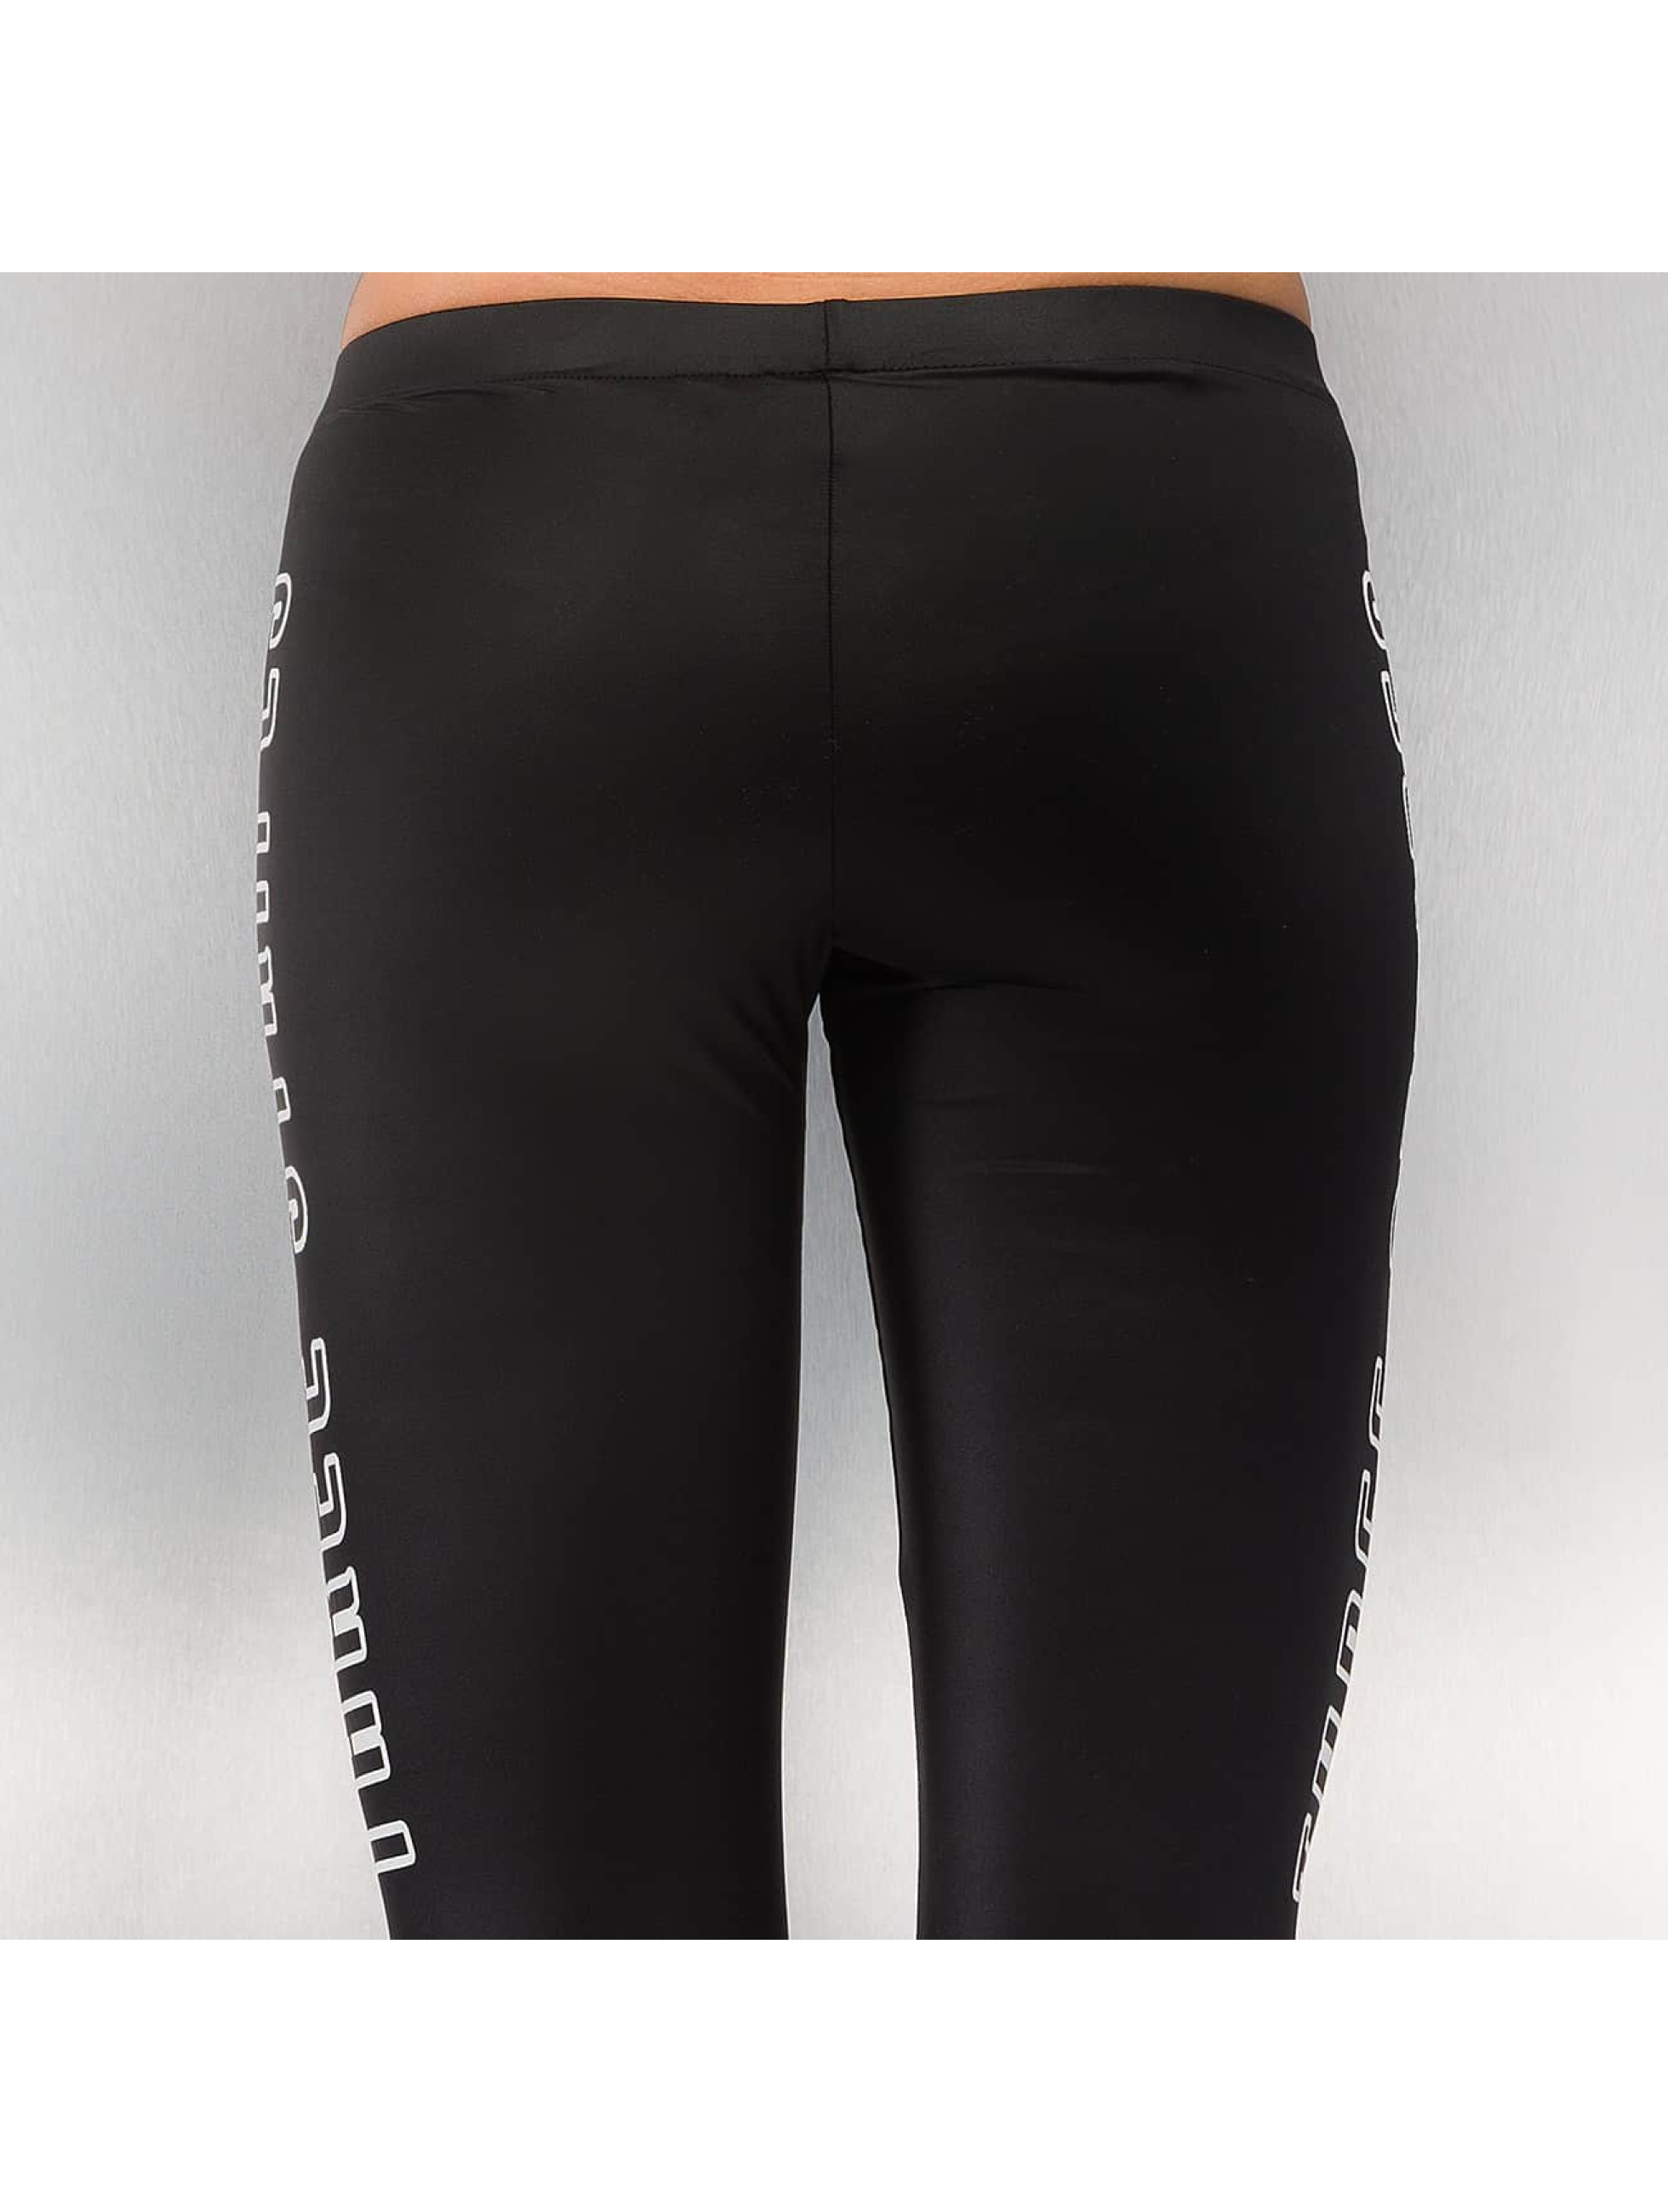 adidas Legging/Tregging Tight black